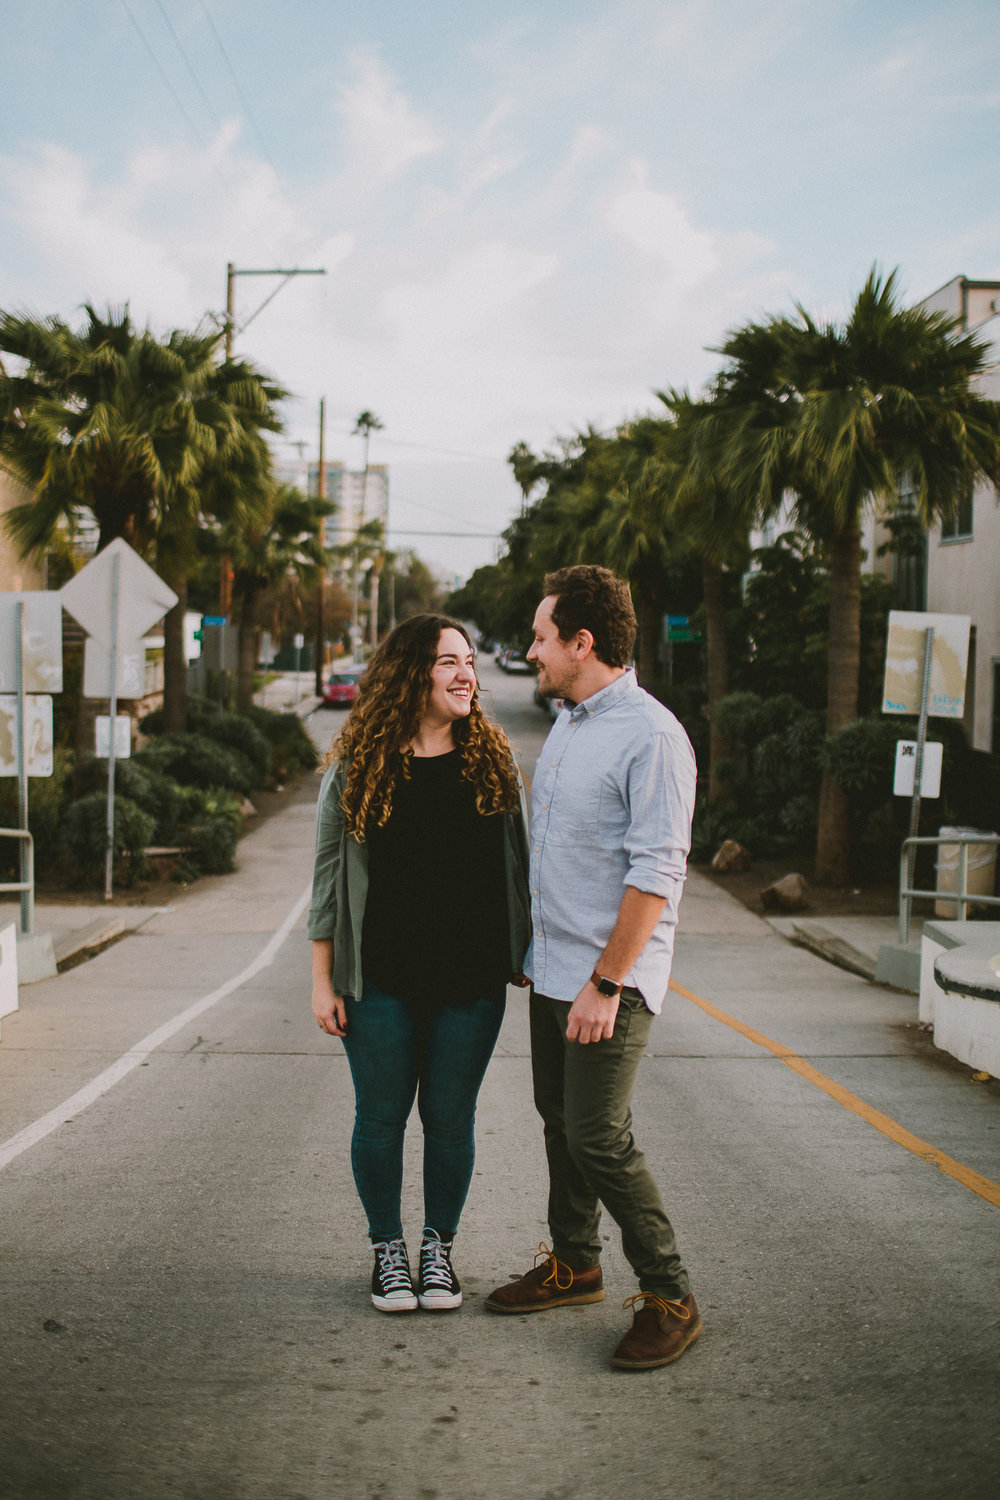 historic-venice-canals-beach-engagament-kelley-raye-los-angeles-wedding-photographer-9-2.jpg